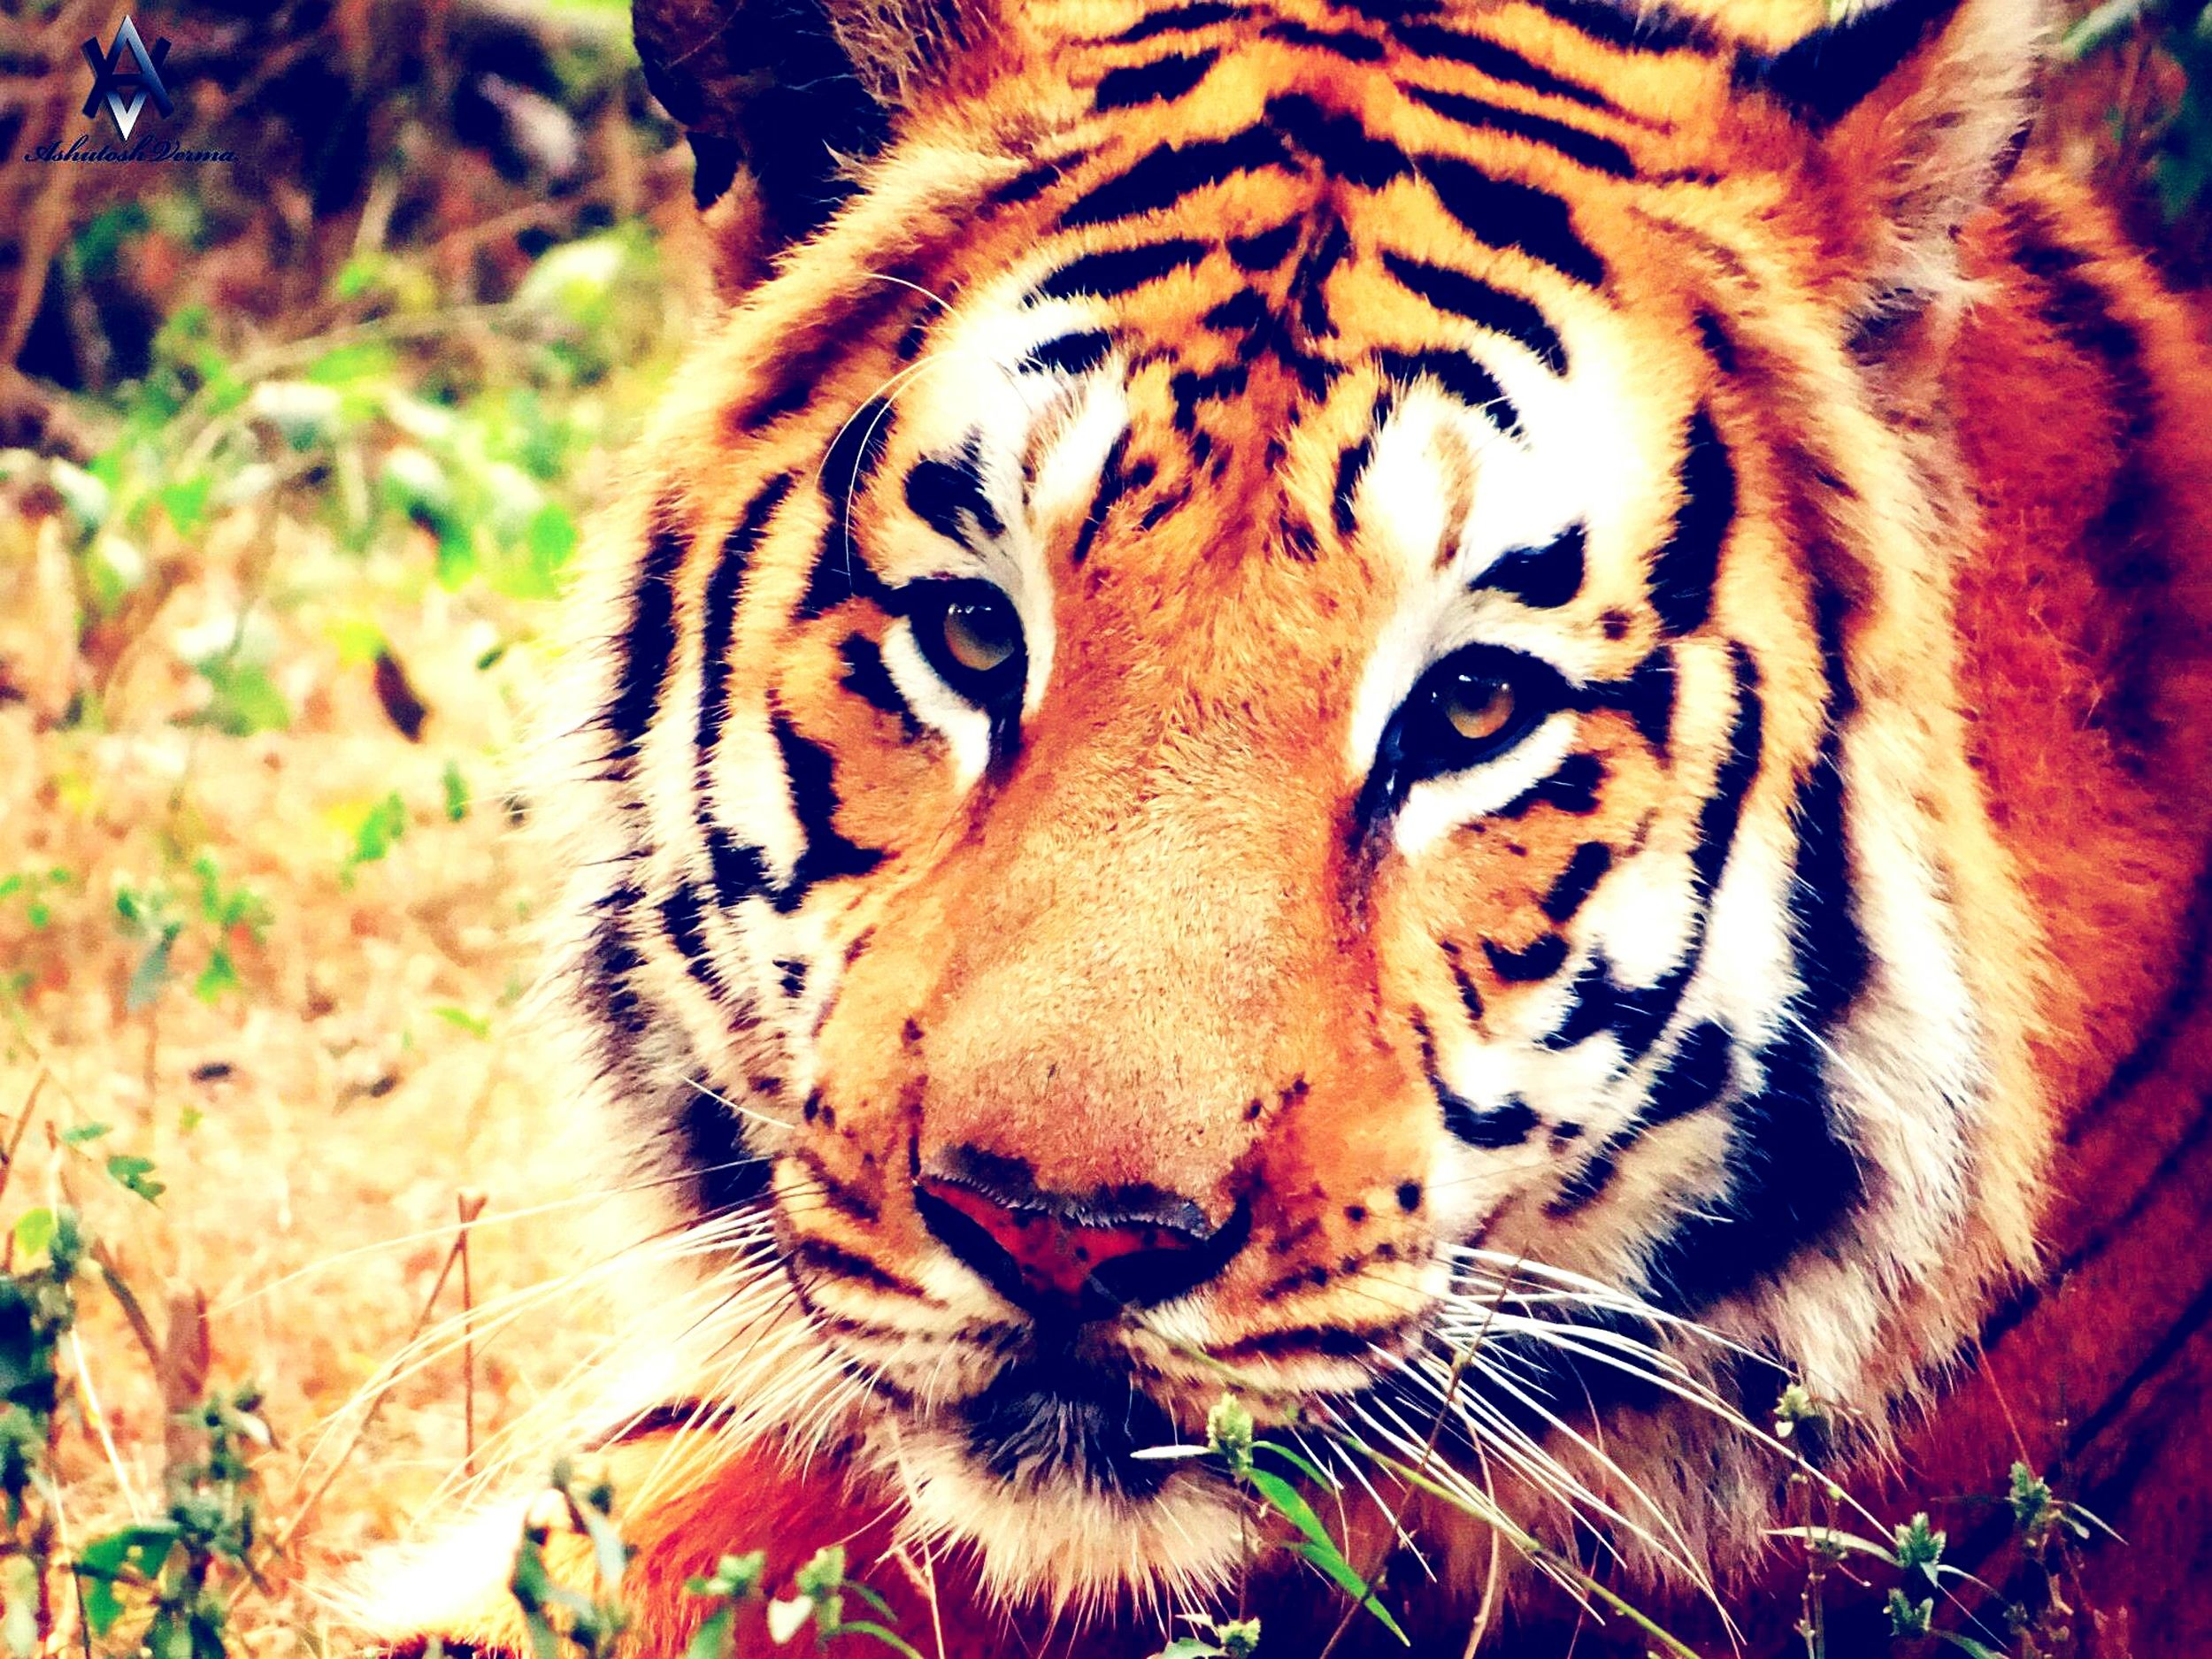 Indian Tiger Tiger Tiger-love Tigers❤ Tiger Face Ready To Kill  India ASIA Hello World Check This Out Taking Photos EyeEm Best Shots EyeEm Best Edits Eyeemphotography EyeEm Masterclass EyeEm Gallery Nature_perfection Animal Photography Animals Posing Animals In The Wild